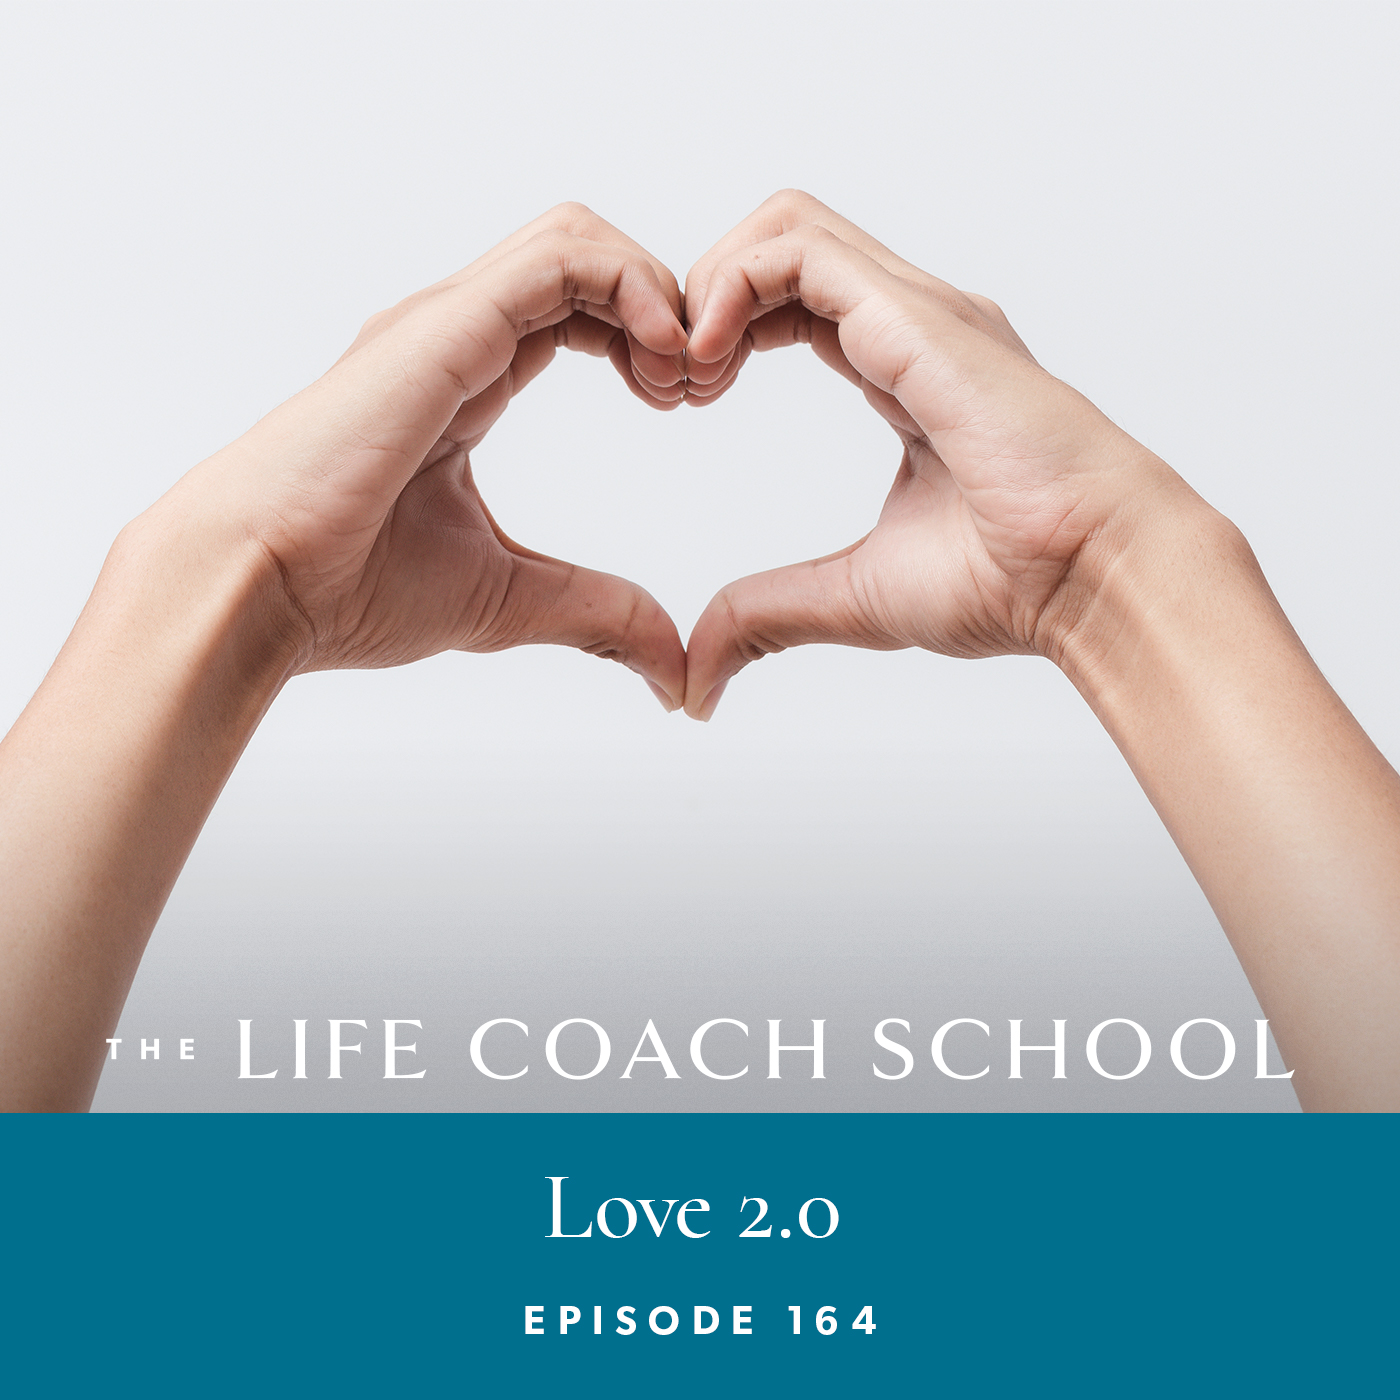 The Life Coach School Podcast with Brooke Castillo | Episode 164 | Love 2.0